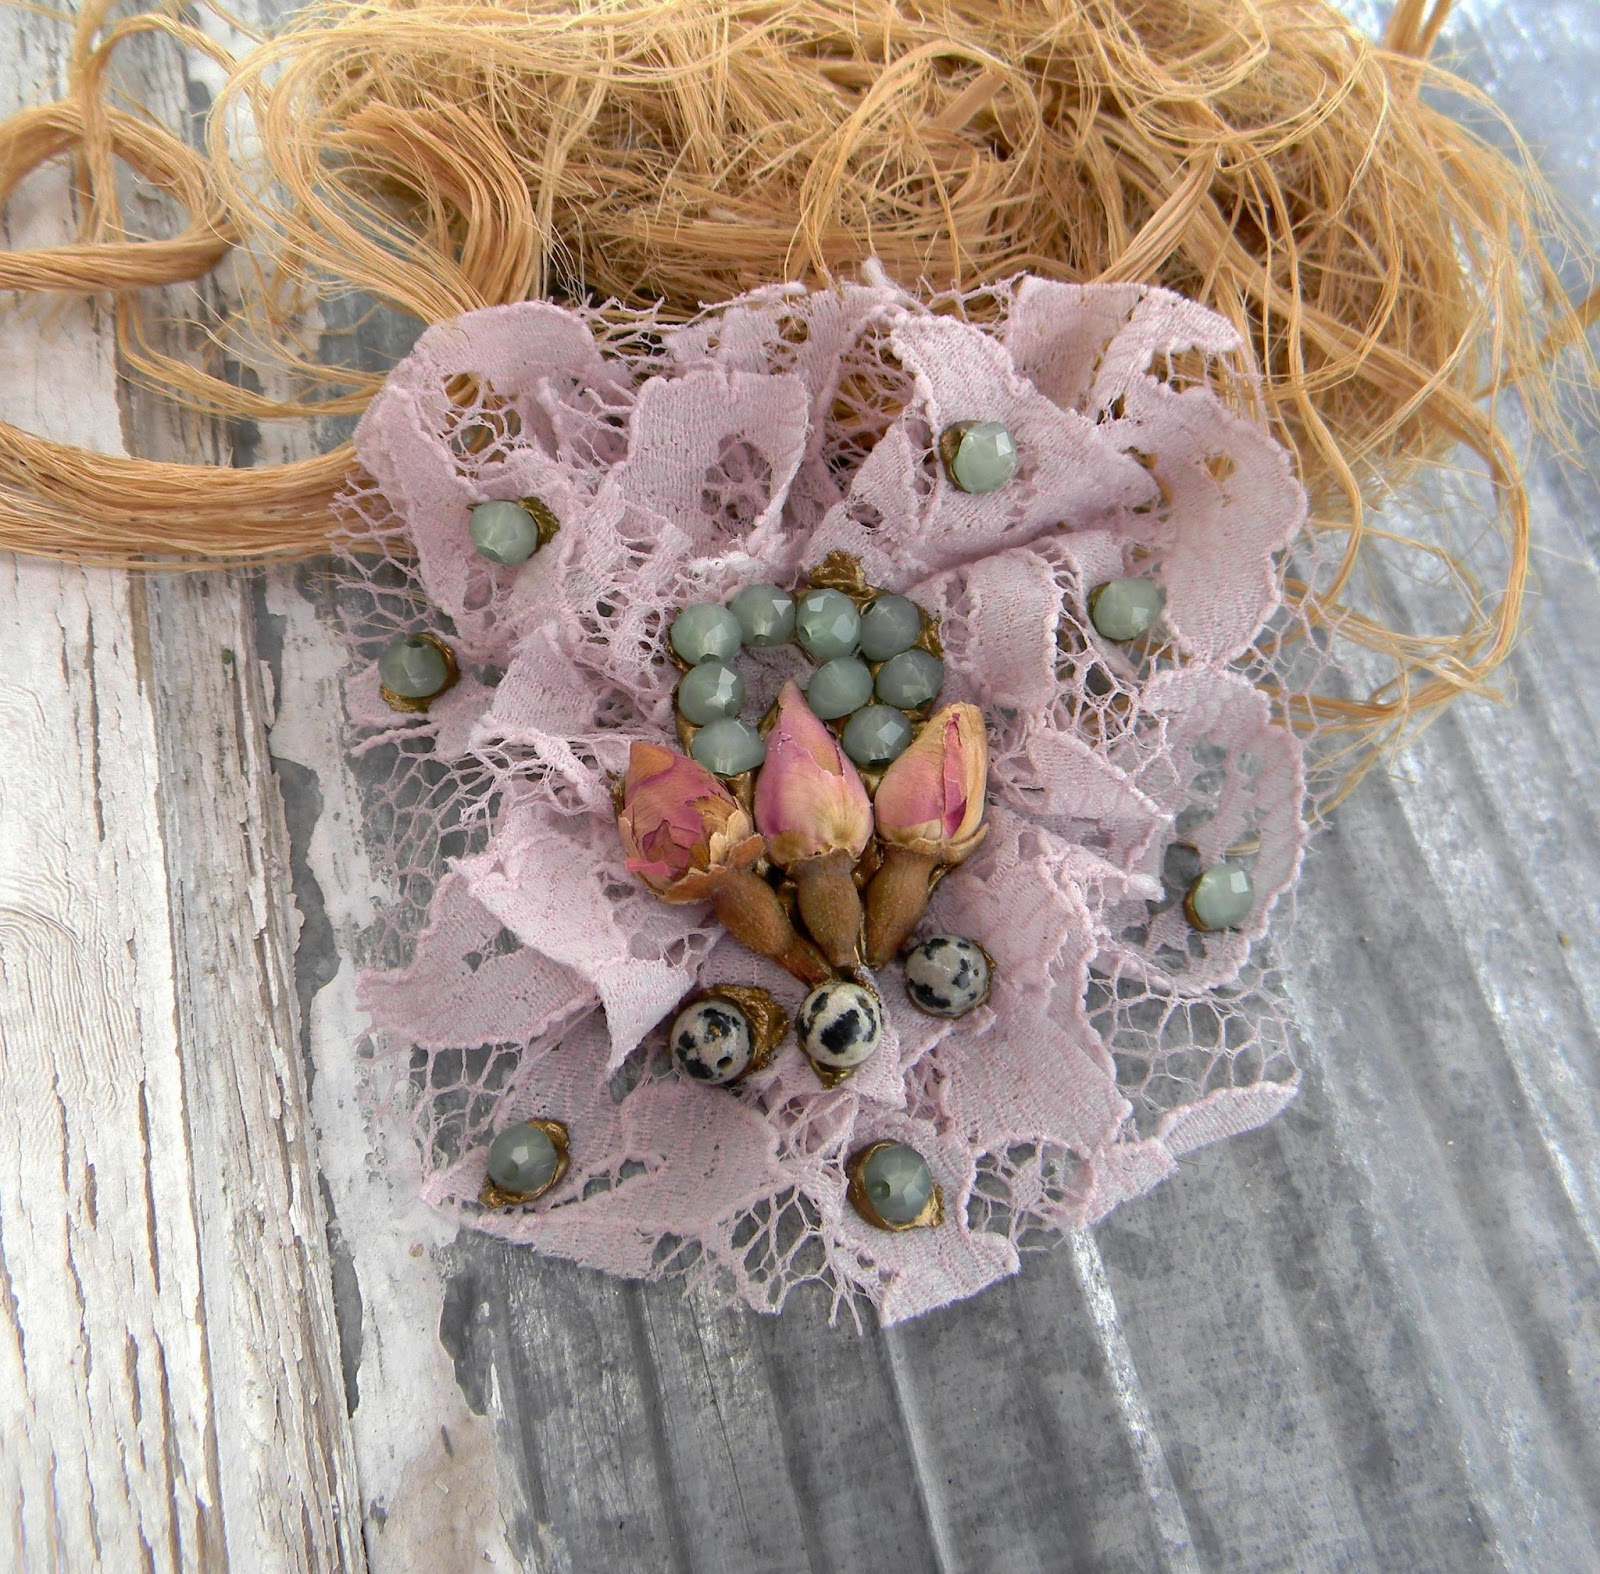 Unique Handcrfated Textile Brooch Shabby Eco Chic Inspired